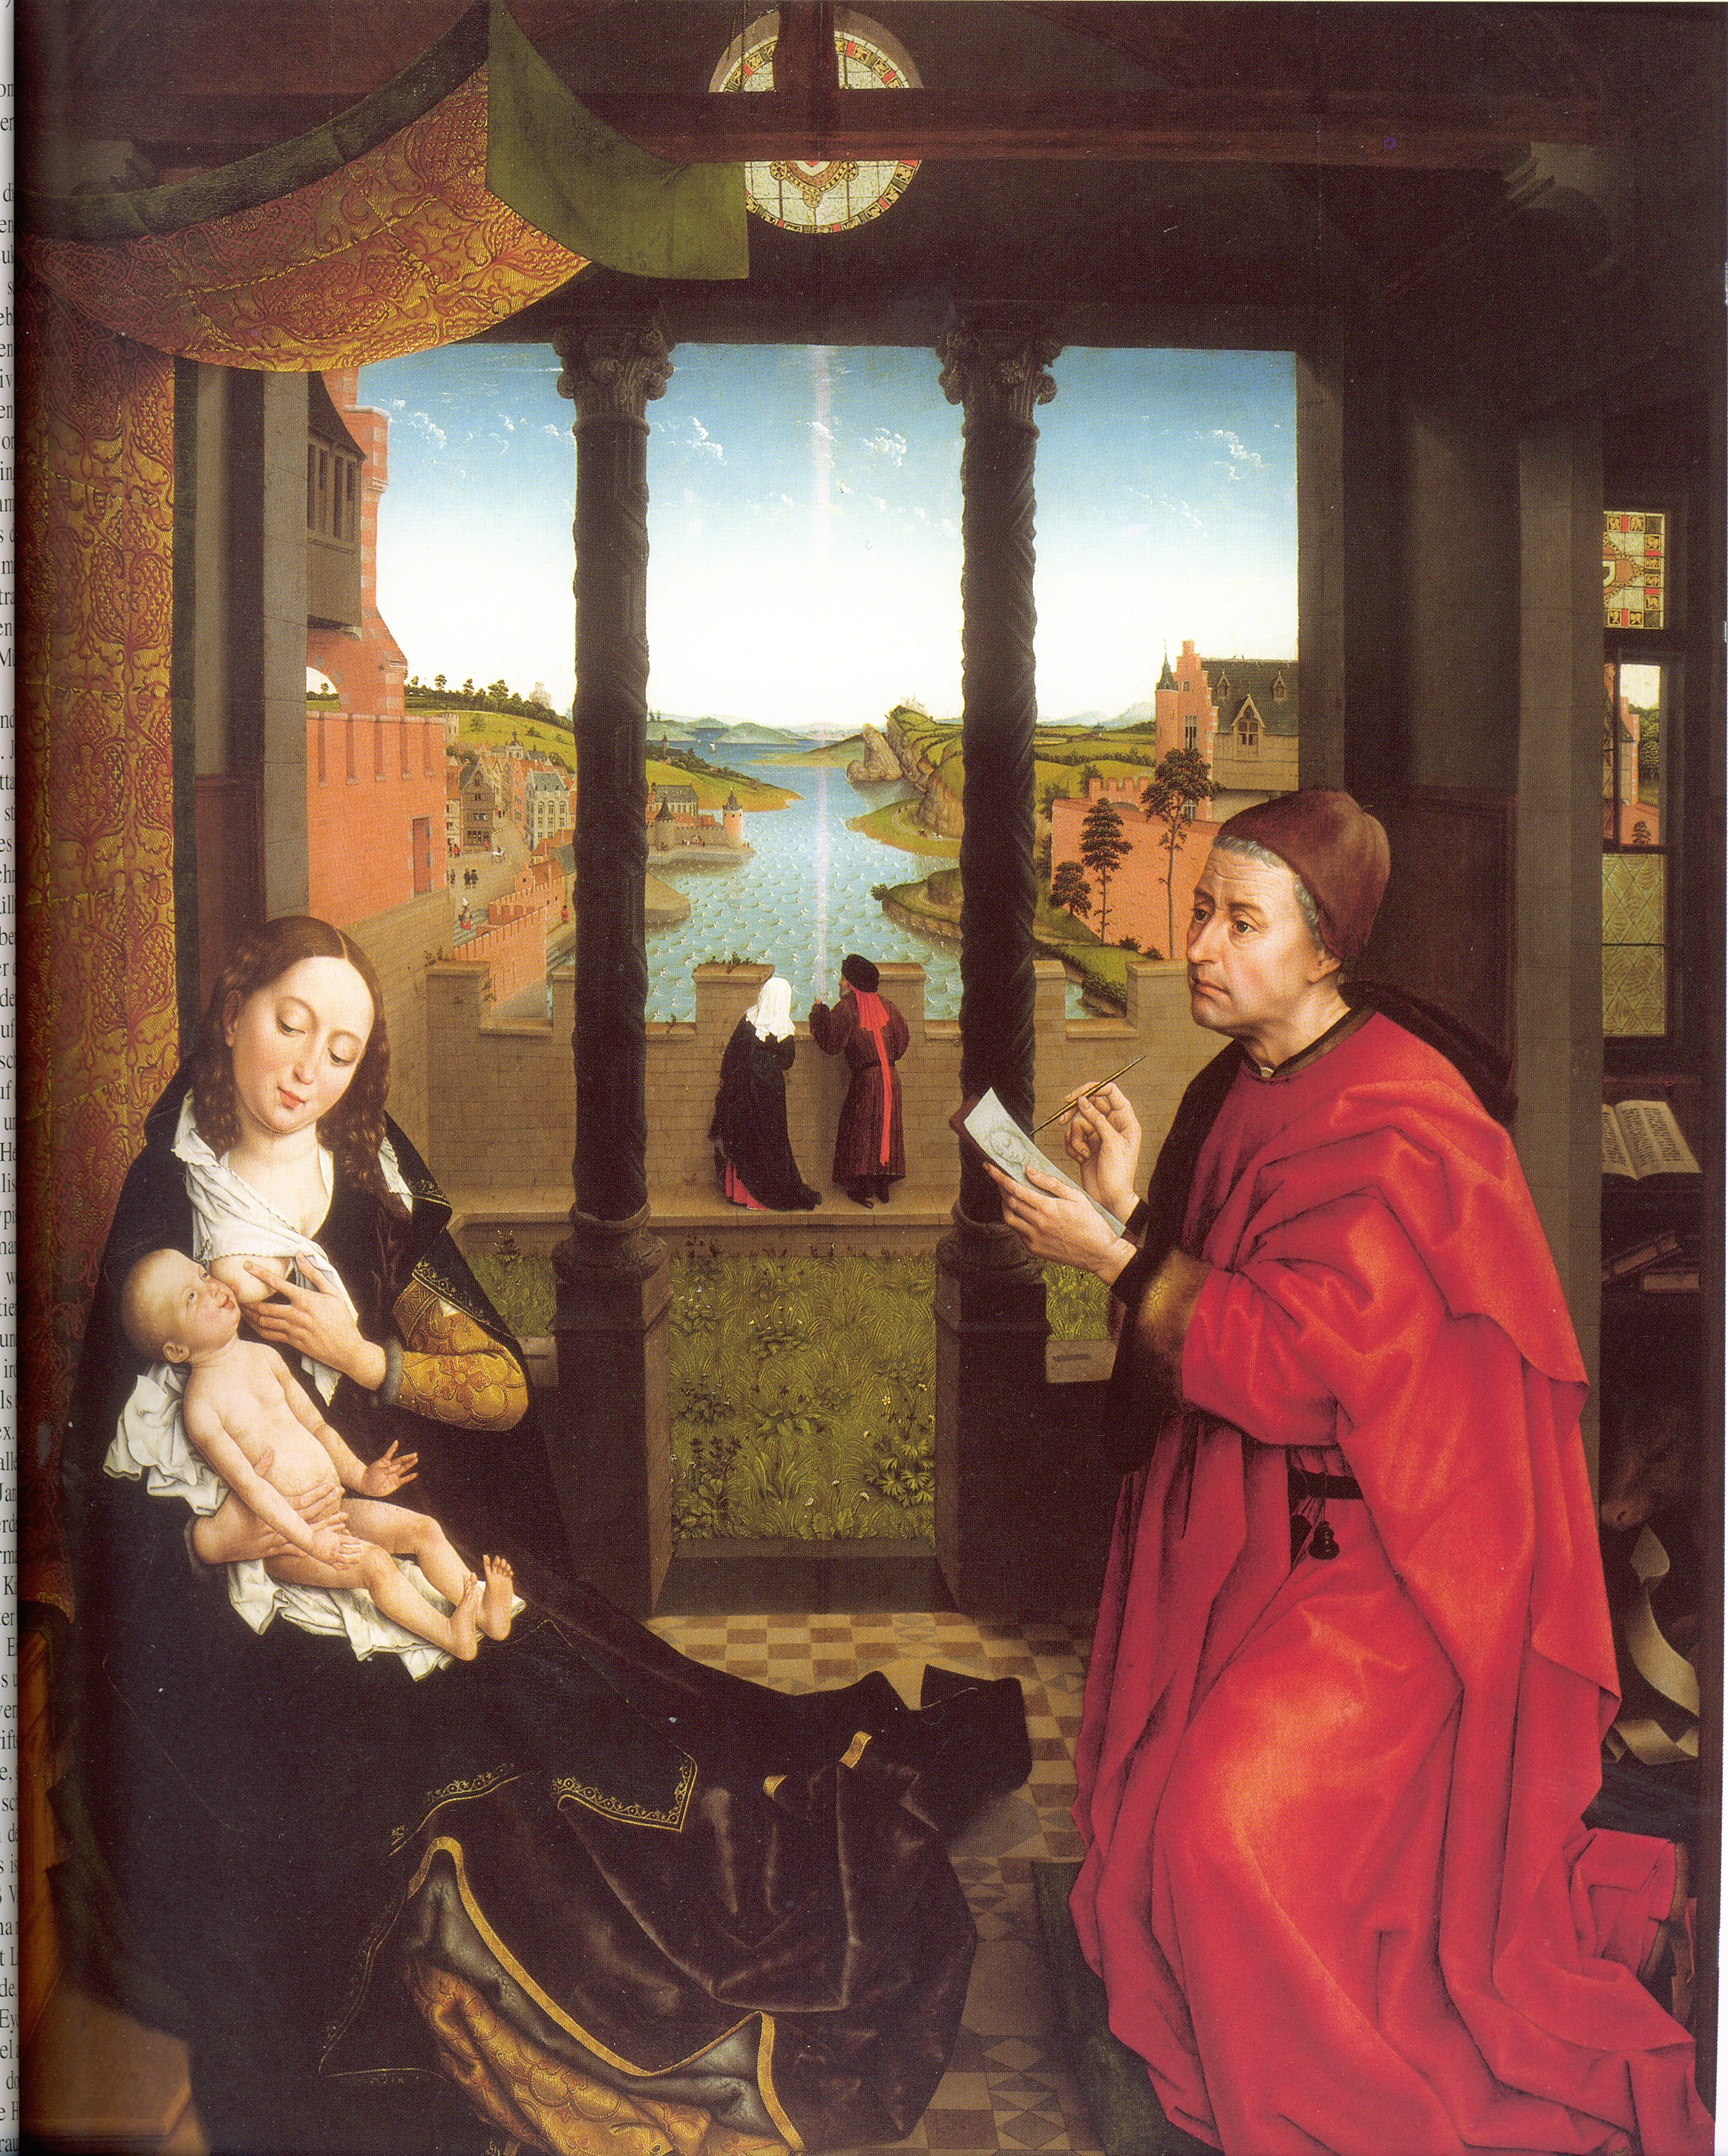 Rogier Van der Weydent - Saint-Luc painting the portrait of the Virgin